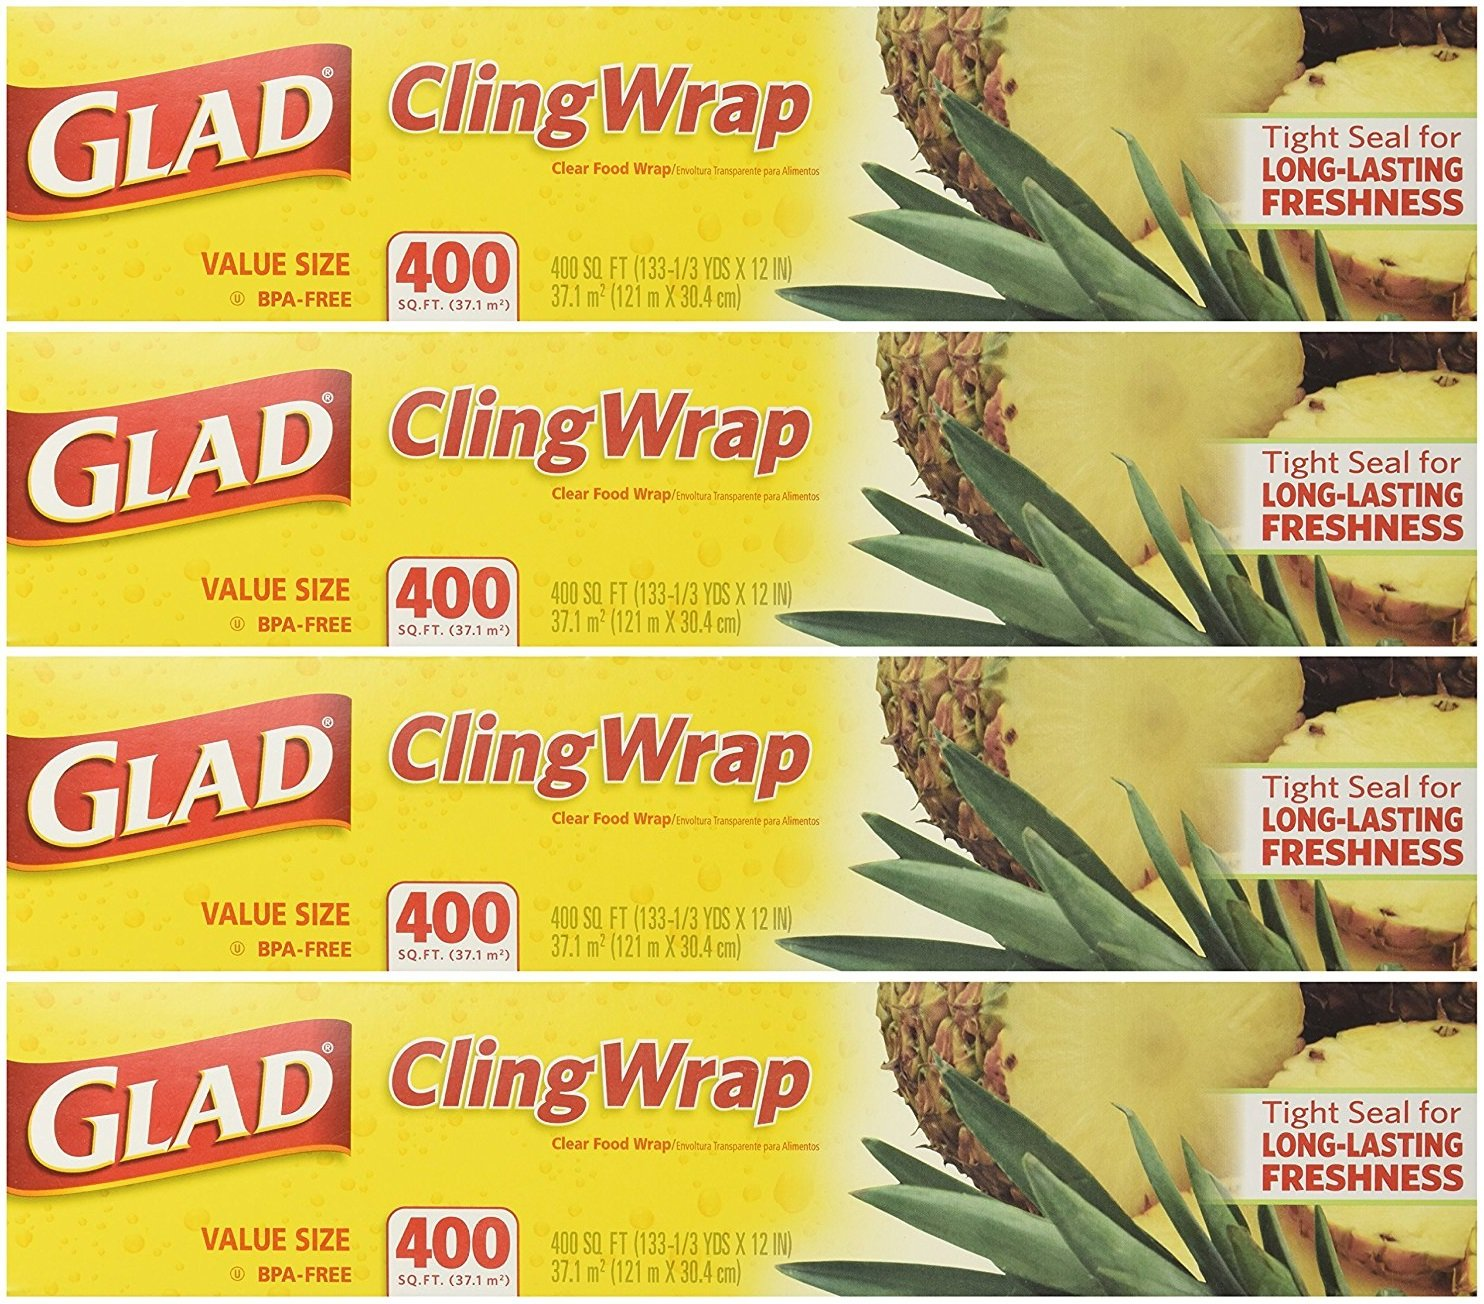 Glad Cling Wrap Clear Food Wrap, 400 Sq Ft Roll (Pack of 4 Rolls) by Glad